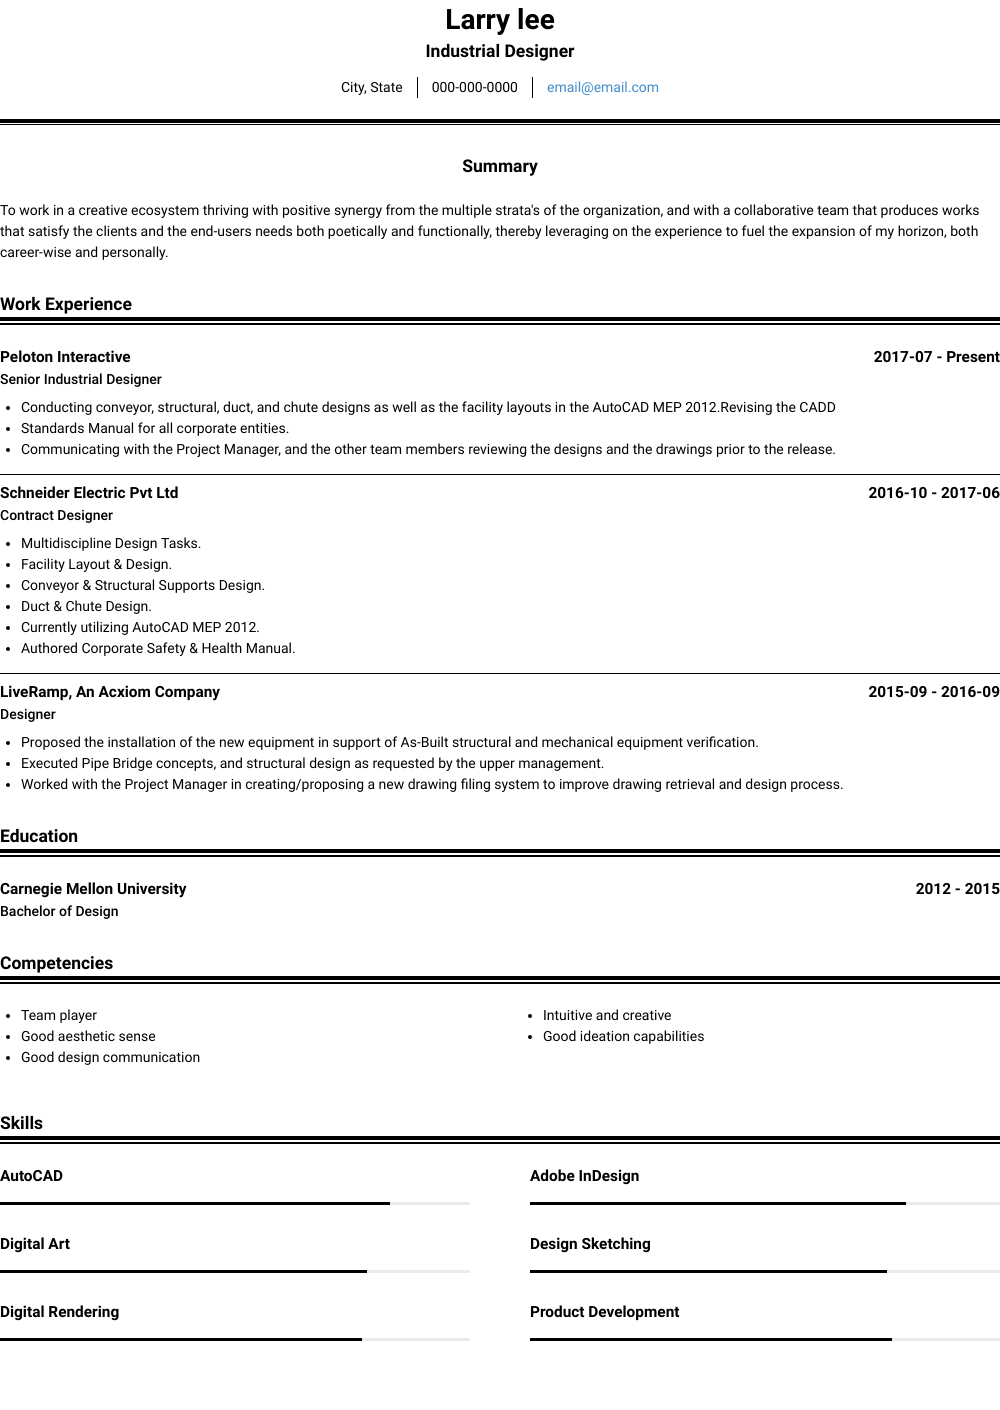 Industrial Designer Resume Sample